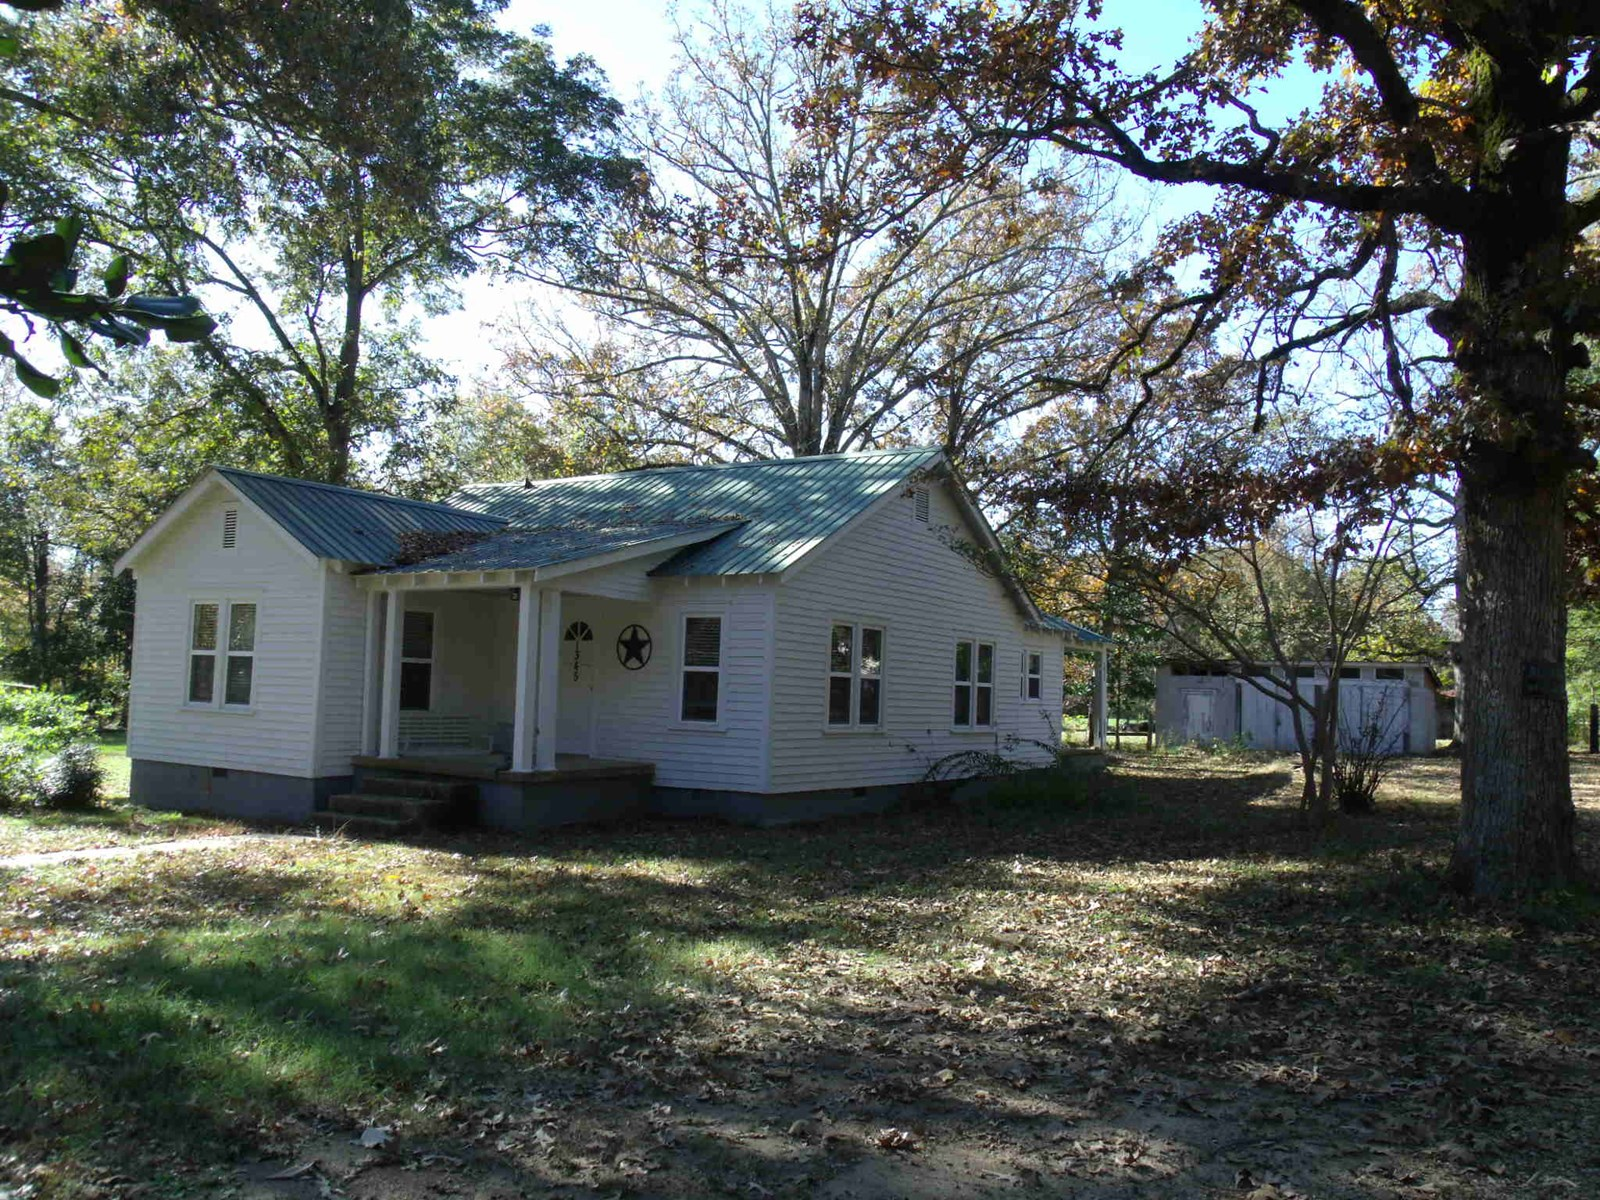 TN HOME FOR SALE AFFORDABLE, ACREAGE, SHOP, BARN, REMODELED